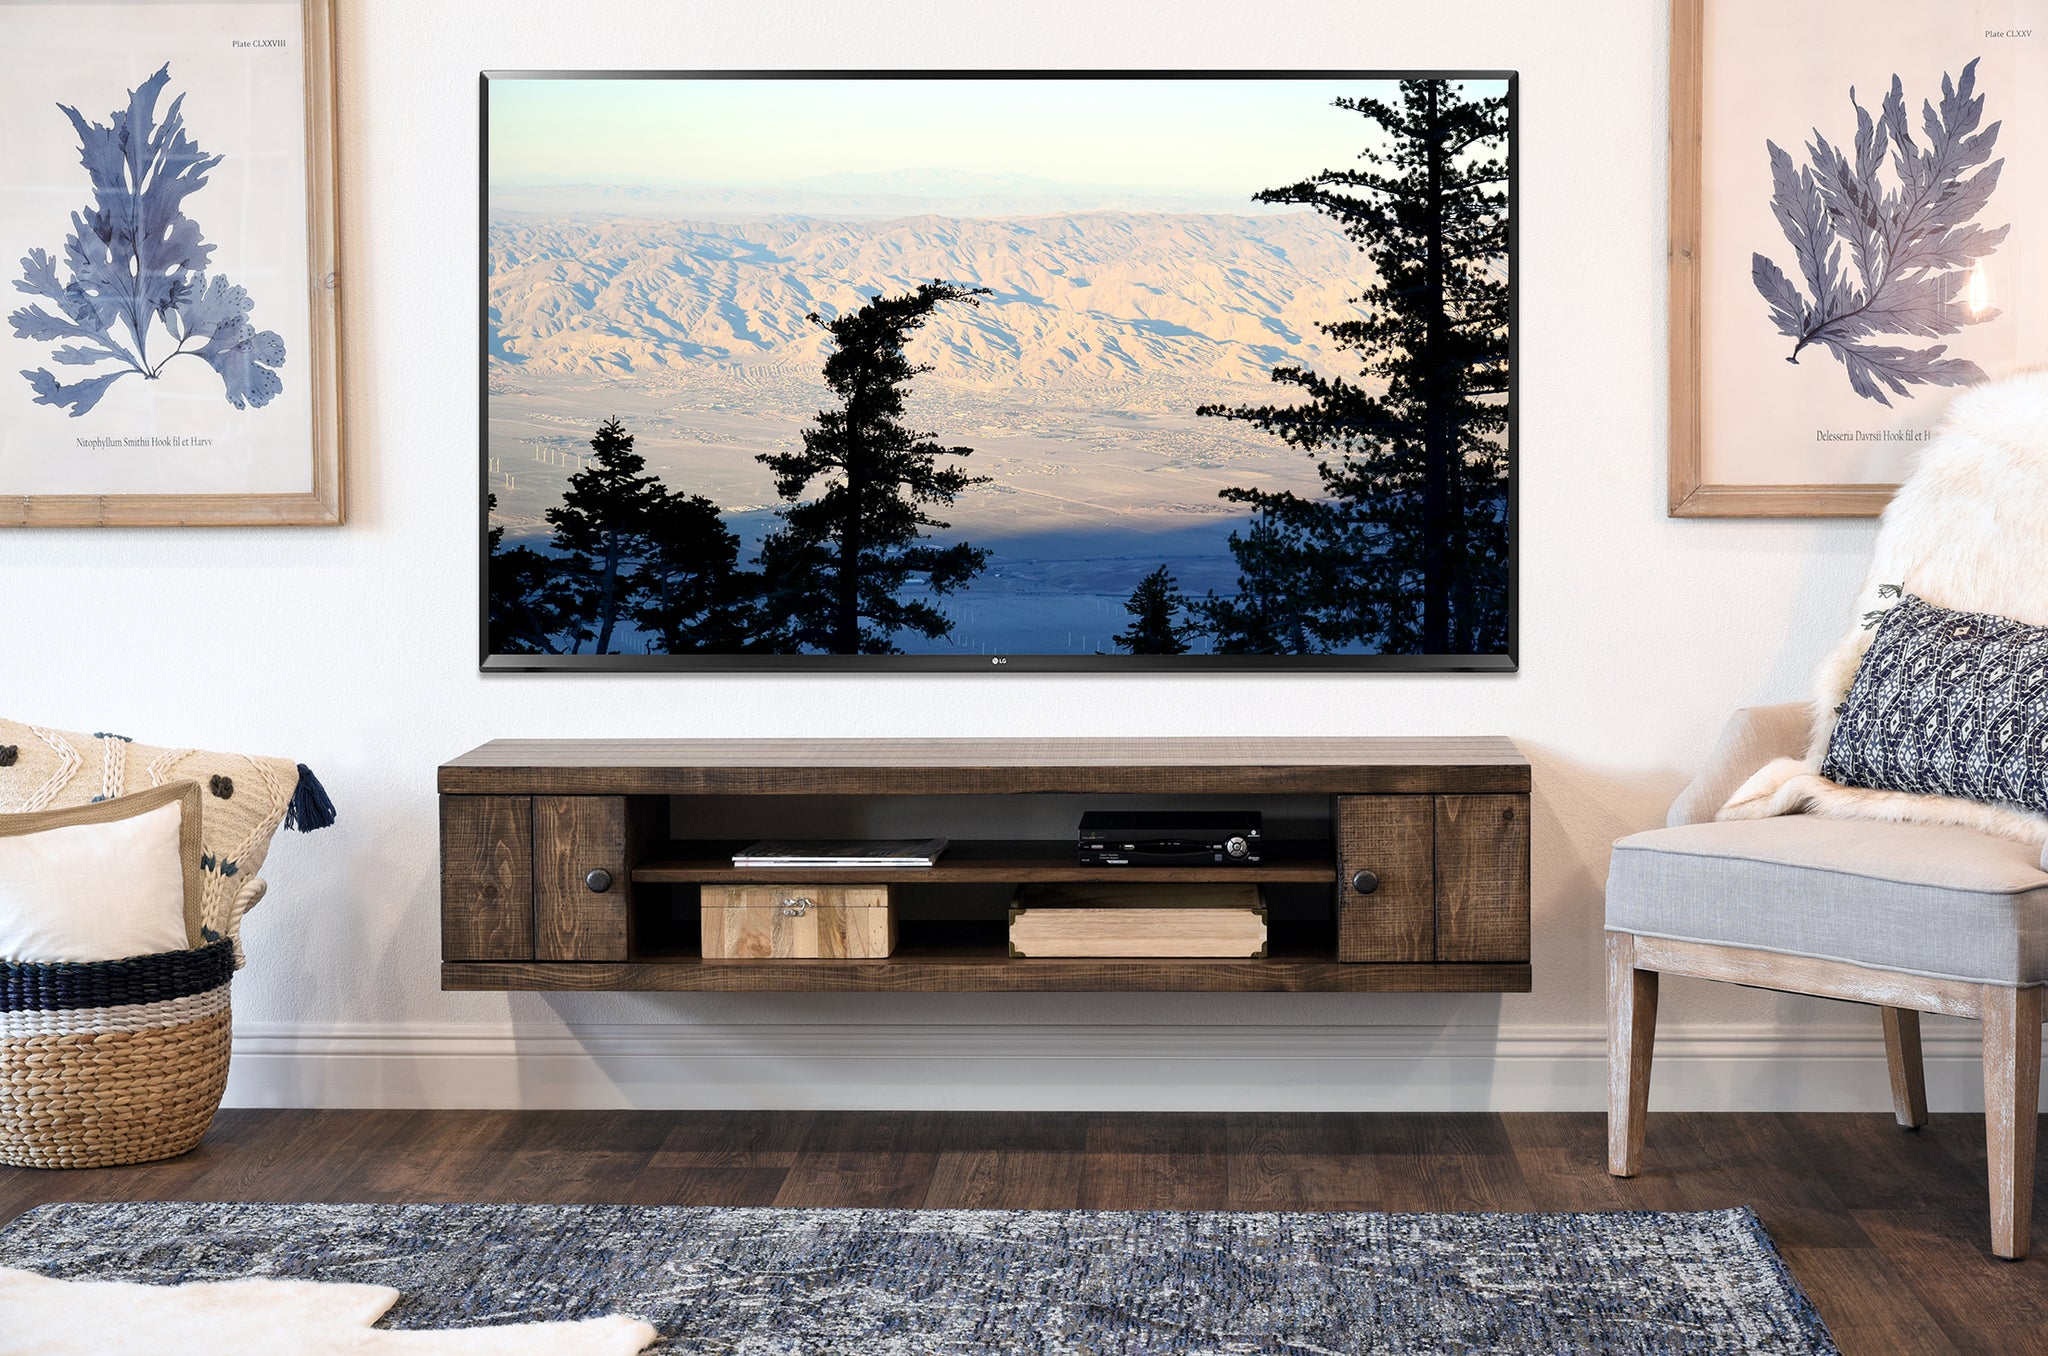 Rustic Barn Wood Style Floating TV Stand - Farmhouse - Spice - OB 30% OFF!